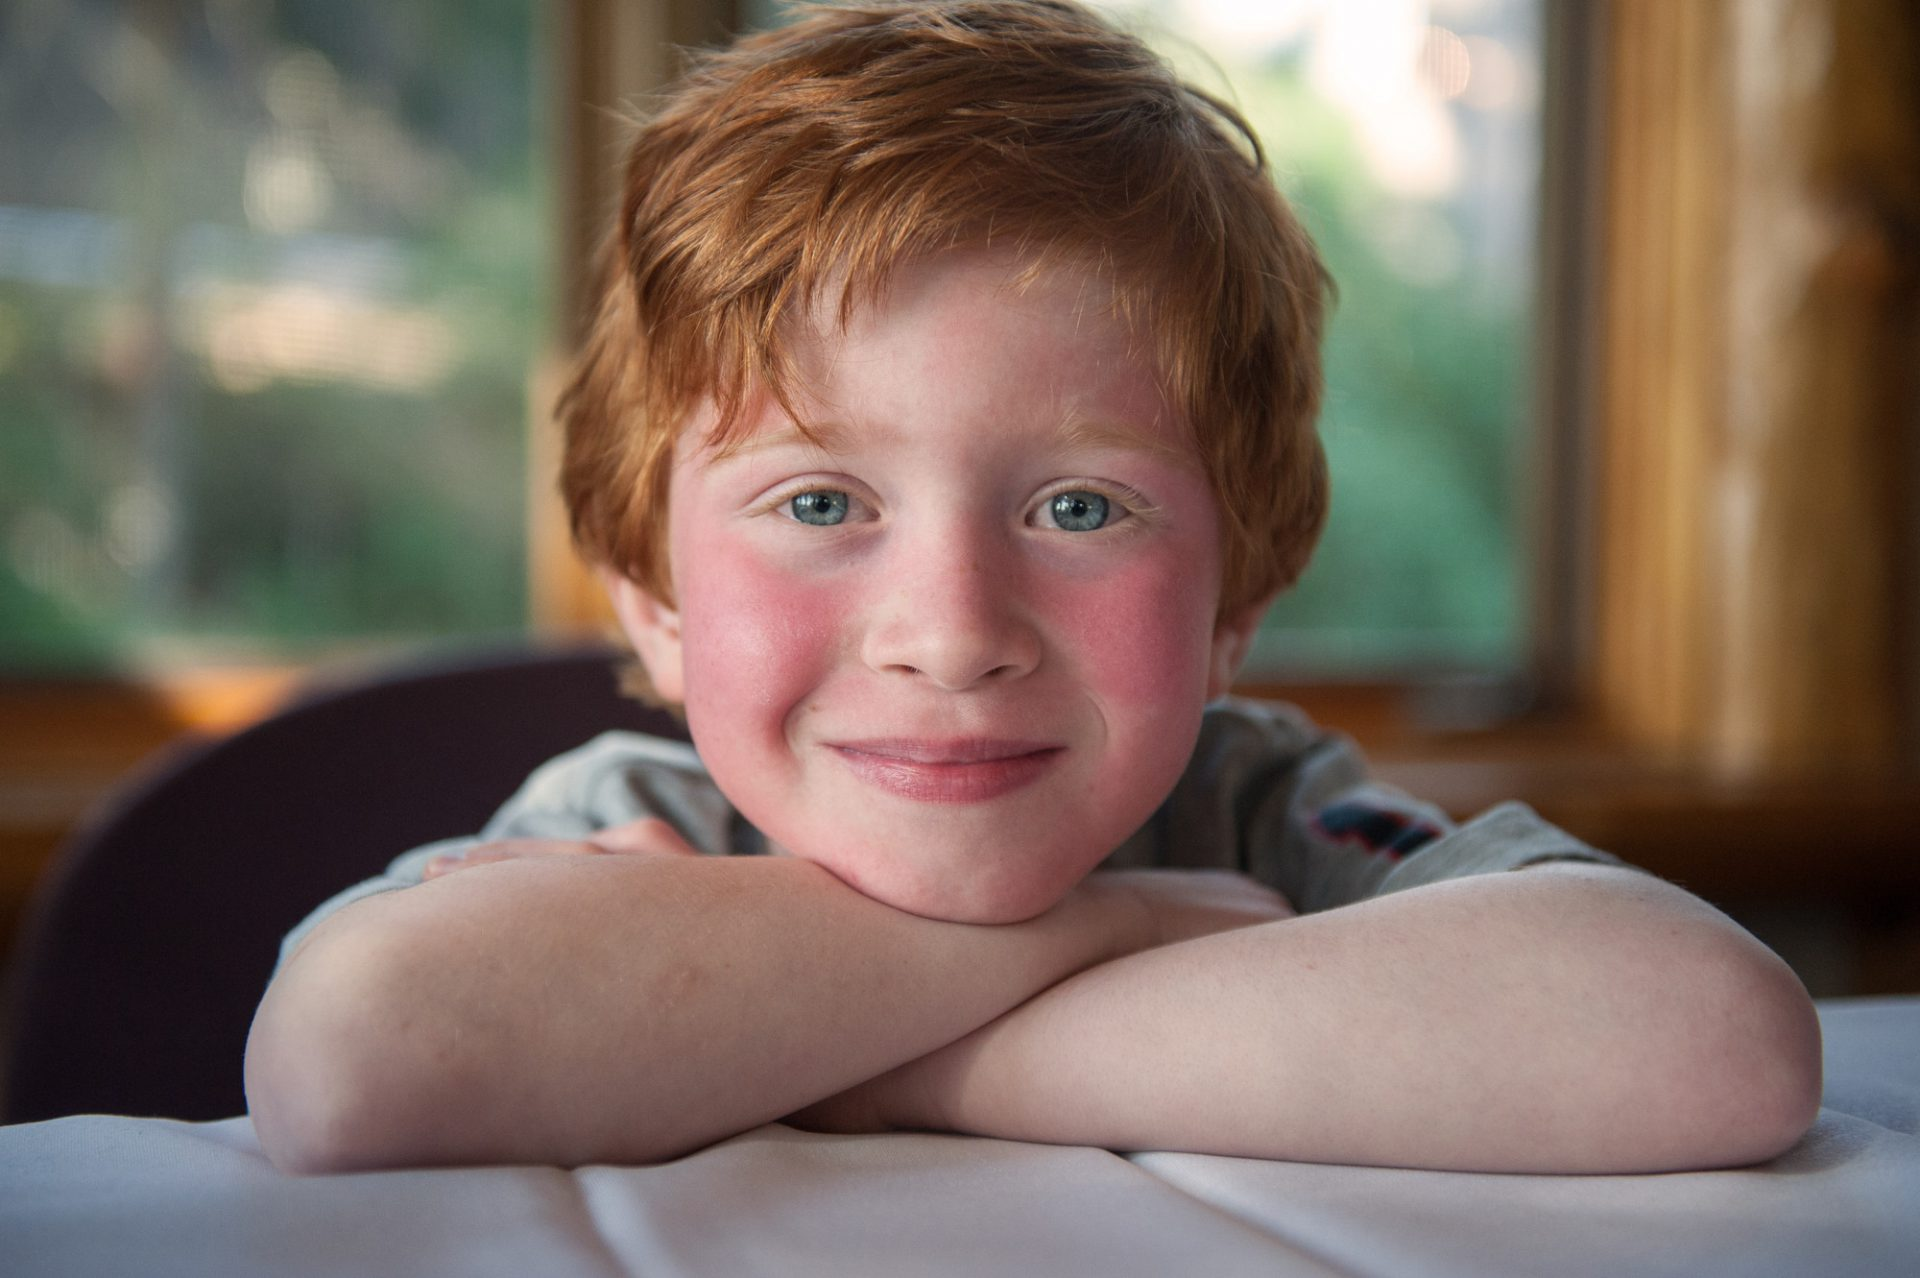 Photo: A happy, young boy with red hair.